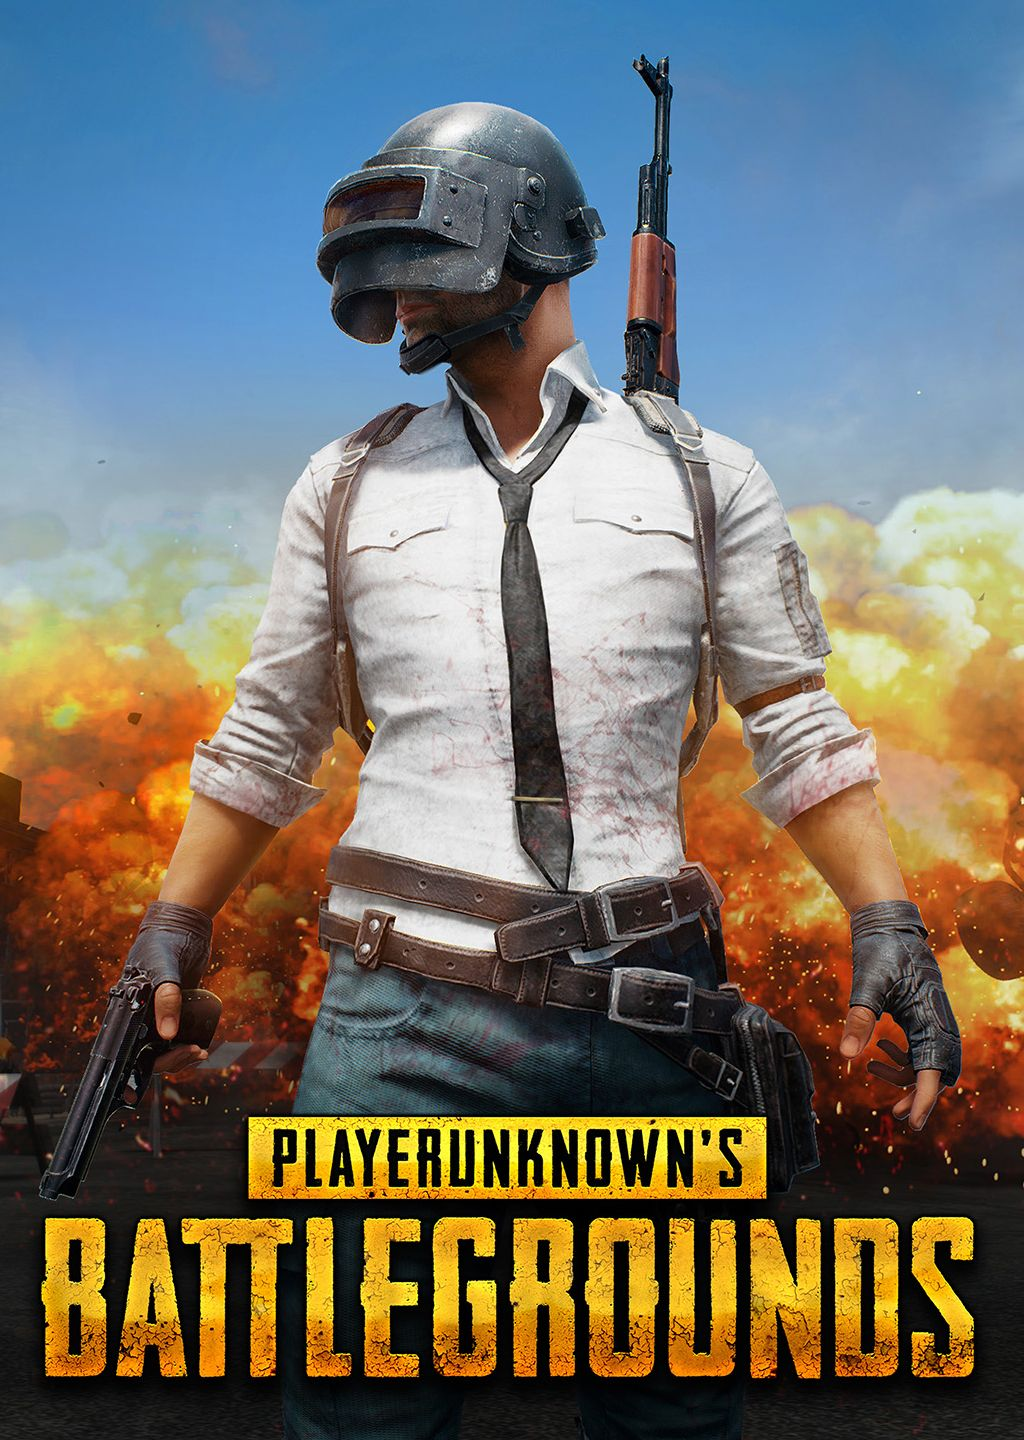 [2game] PLAYERUNKNOWN'S BATTLEGROUNDS (22.25 w/ coupon ISTHEREANYDEAL -  7.75/25% off from regular price)